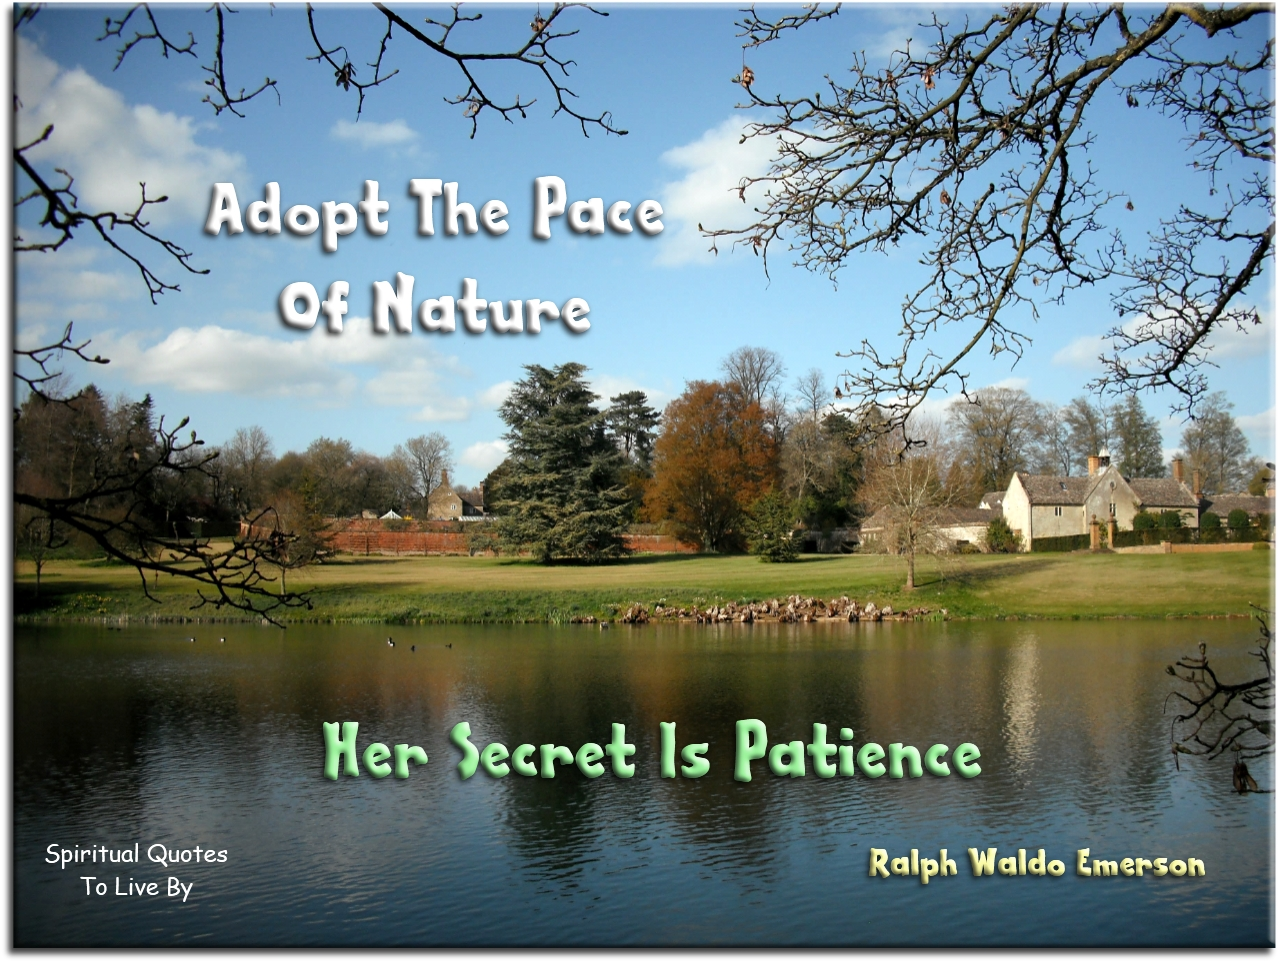 Adopt the pace of nature, her secret is patience - Ralph Waldo Emerson - Spiritual Quotes To Live By